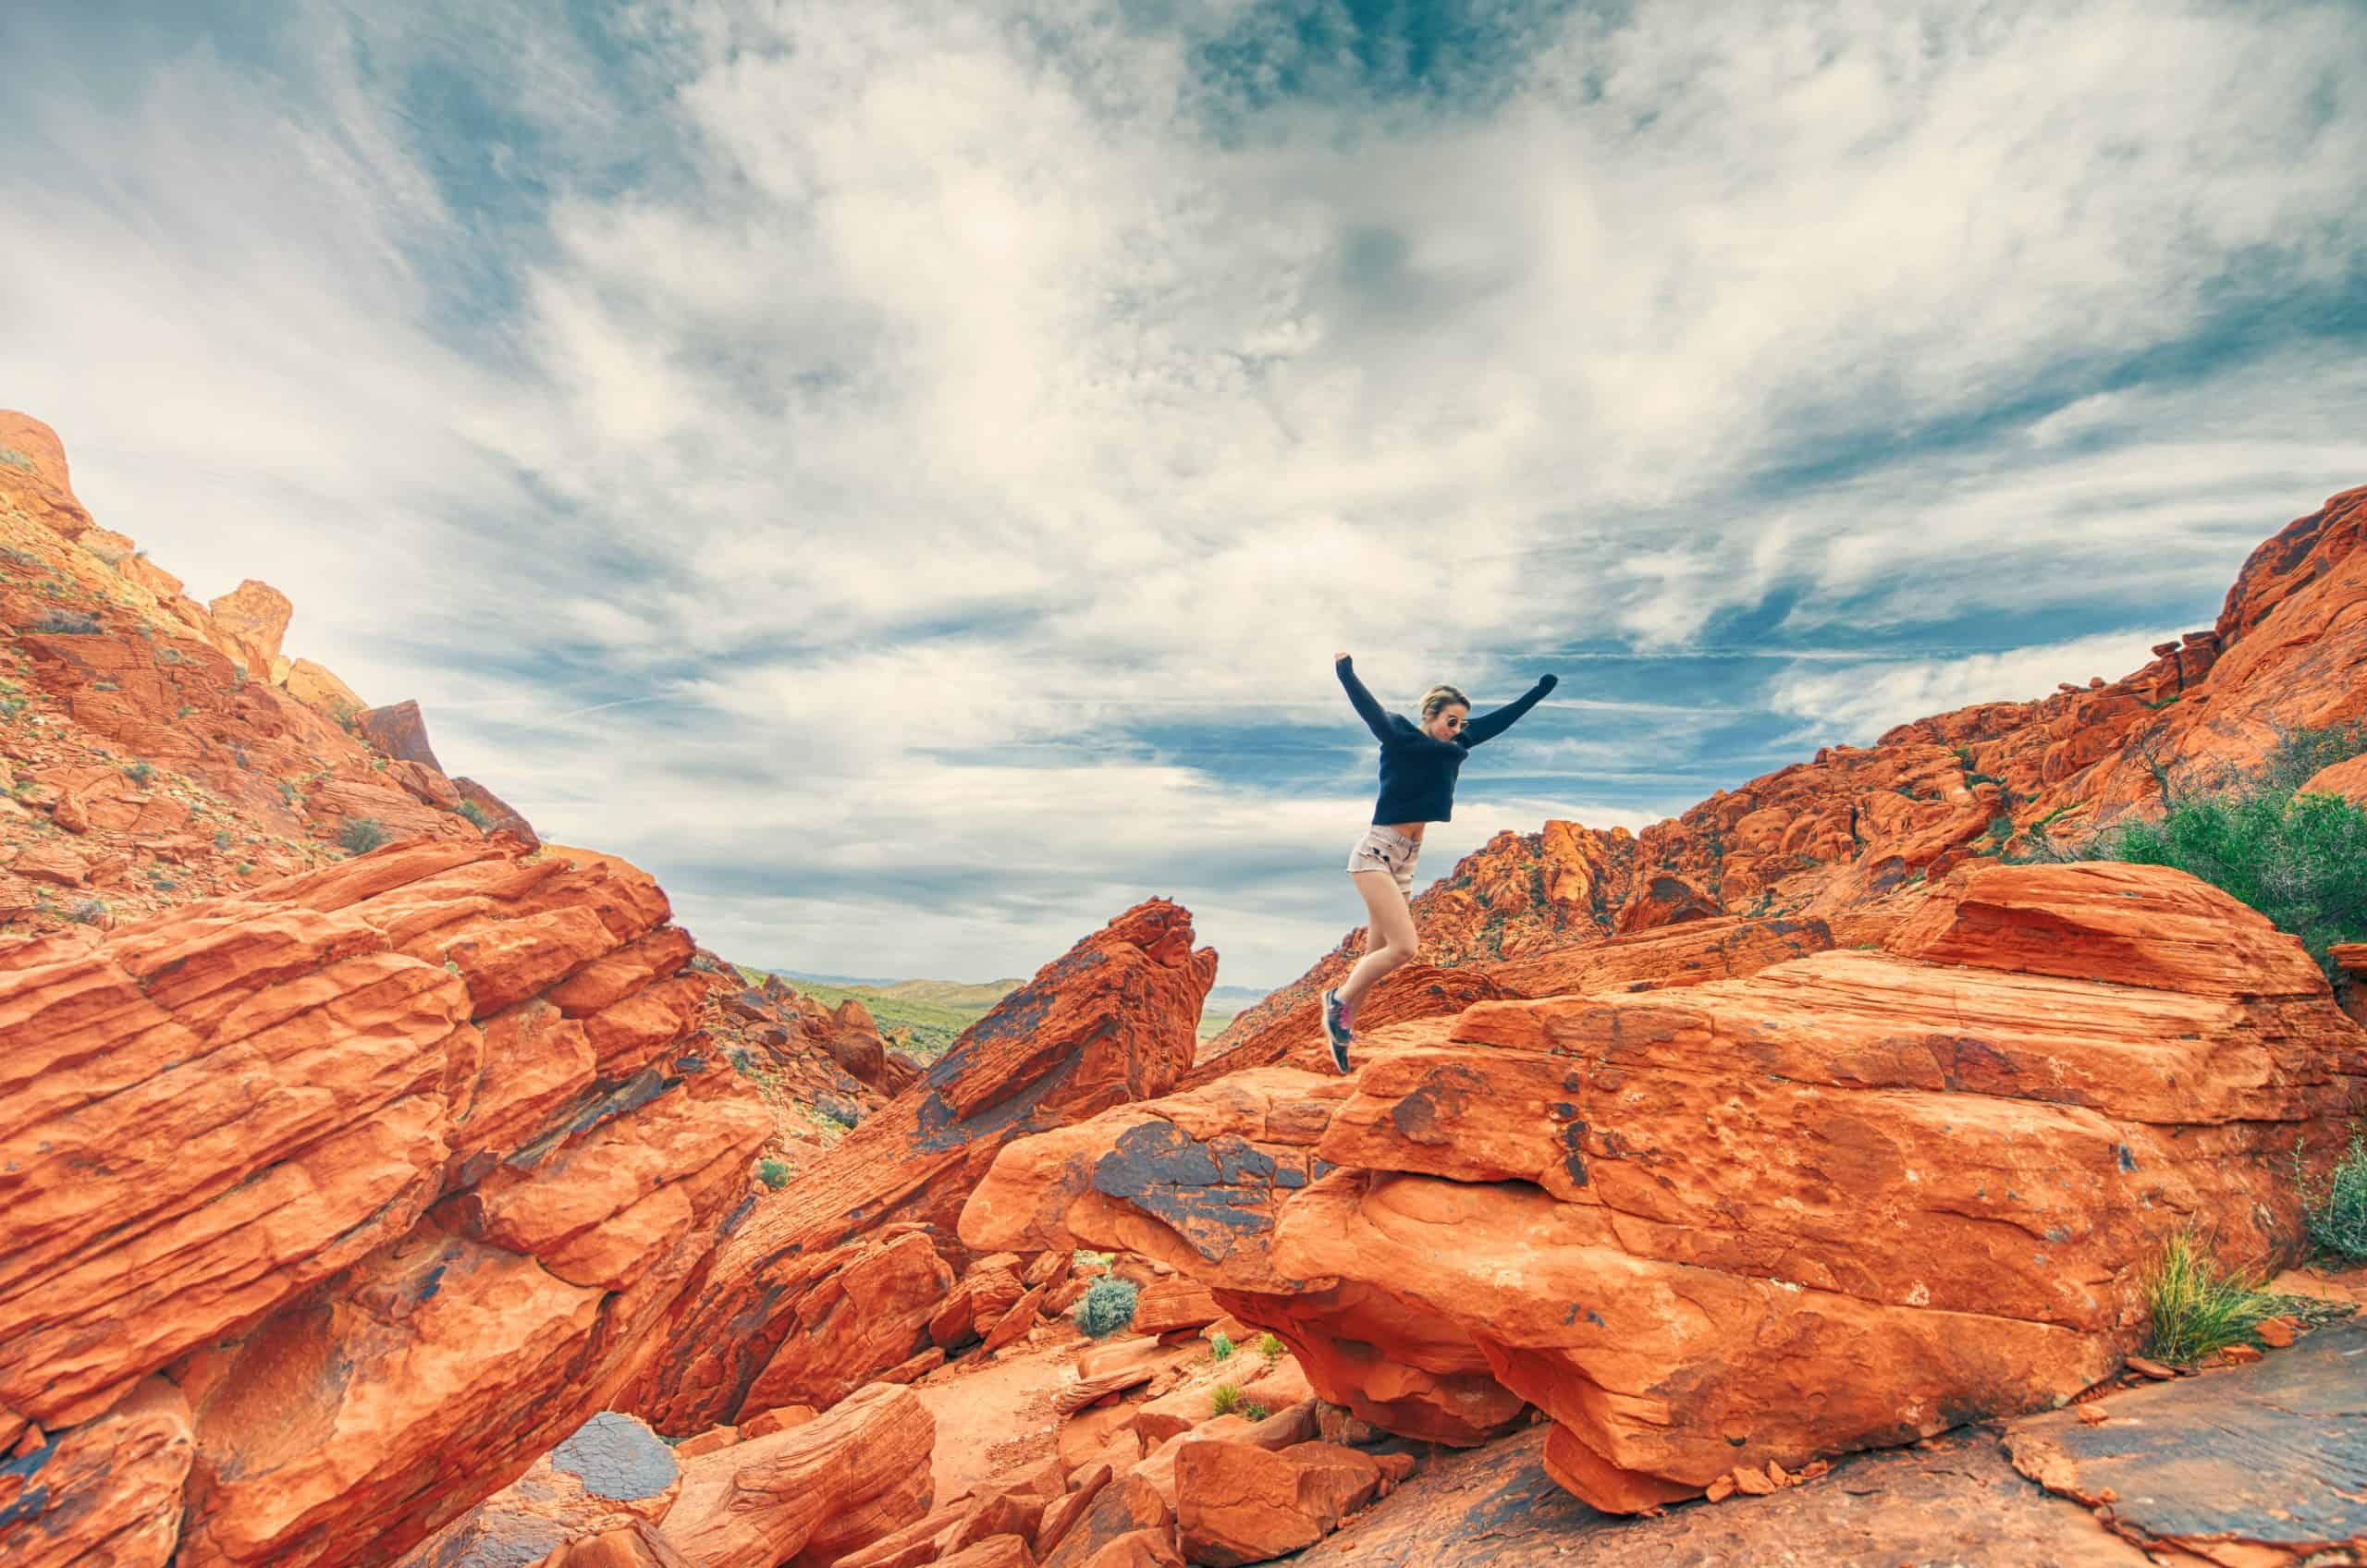 Five Effective Ways to Build Your Self-Confidence